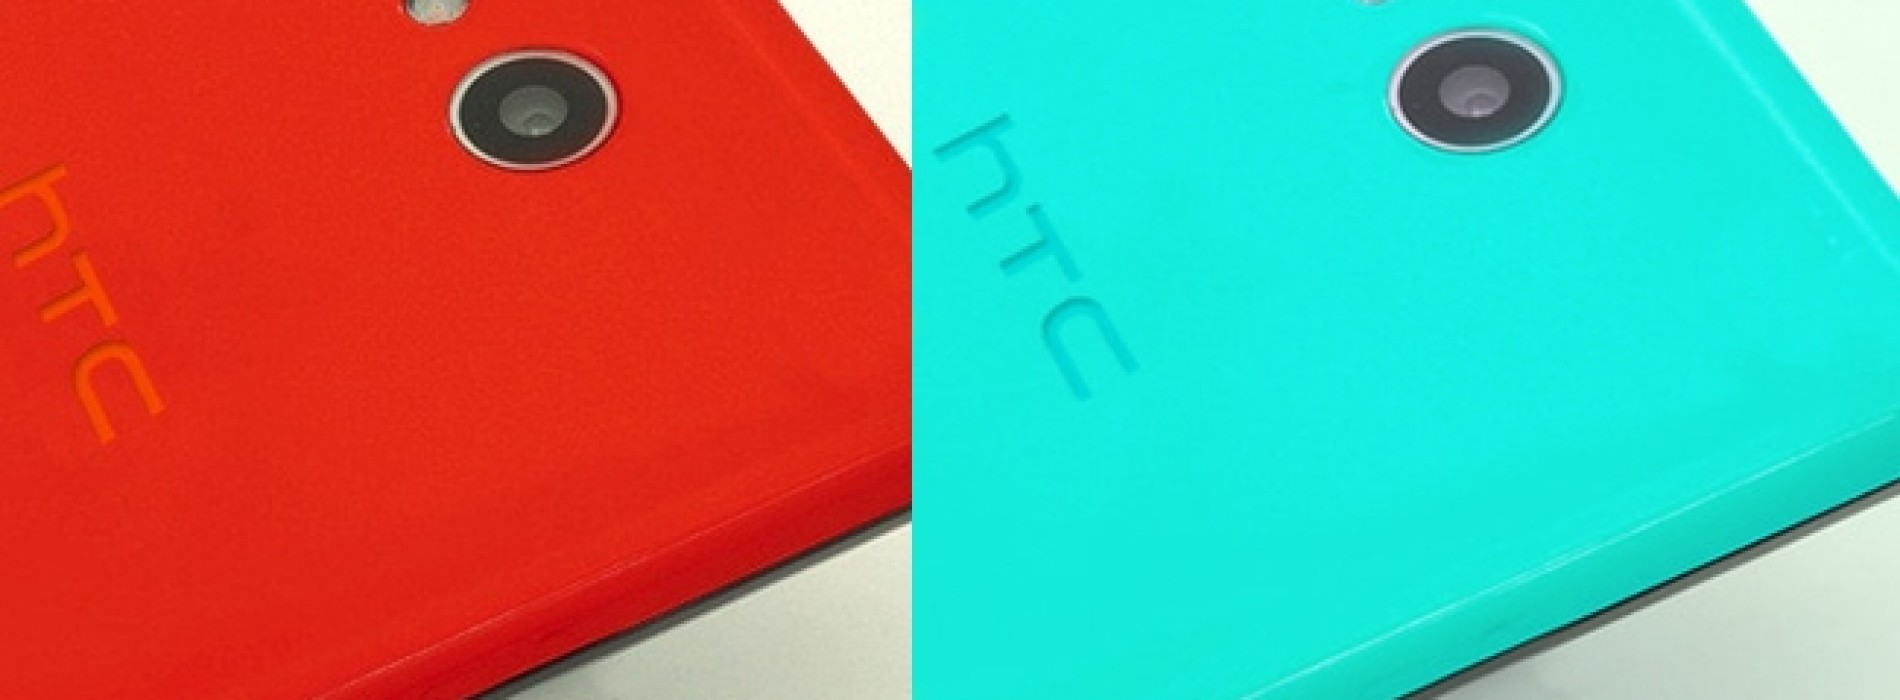 8-core HTC Desire phone rumor